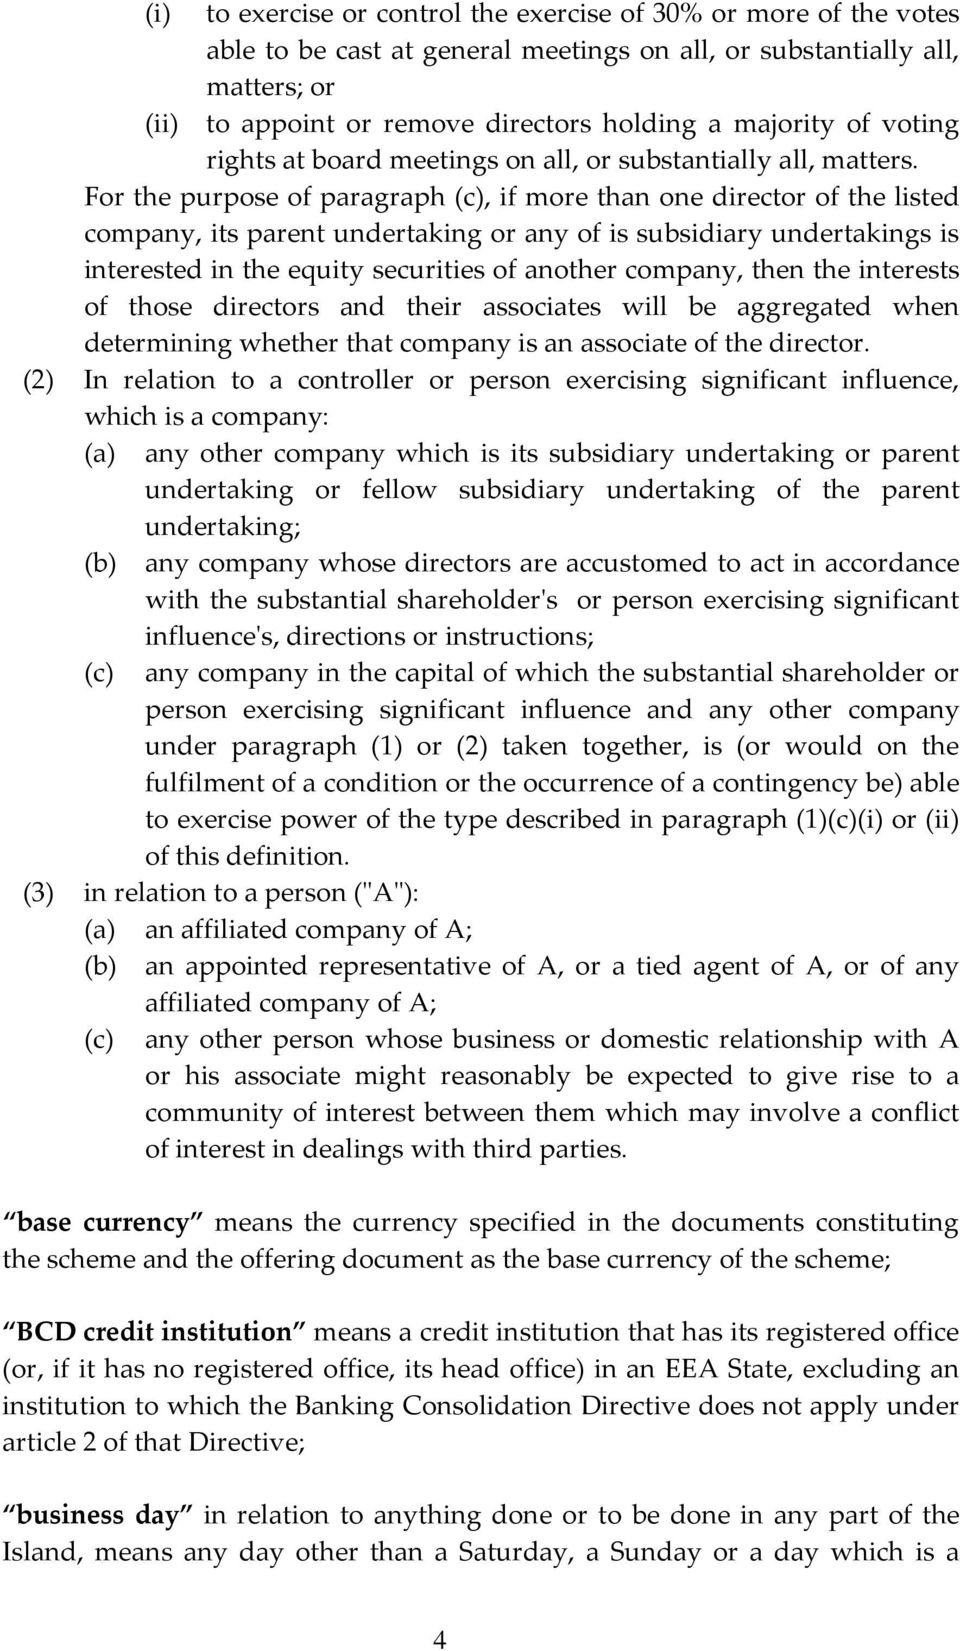 For the purpose of paragraph, if more than one director of the listed company, its parent undertaking or any of is subsidiary undertakings is interested in the equity securities of another company,